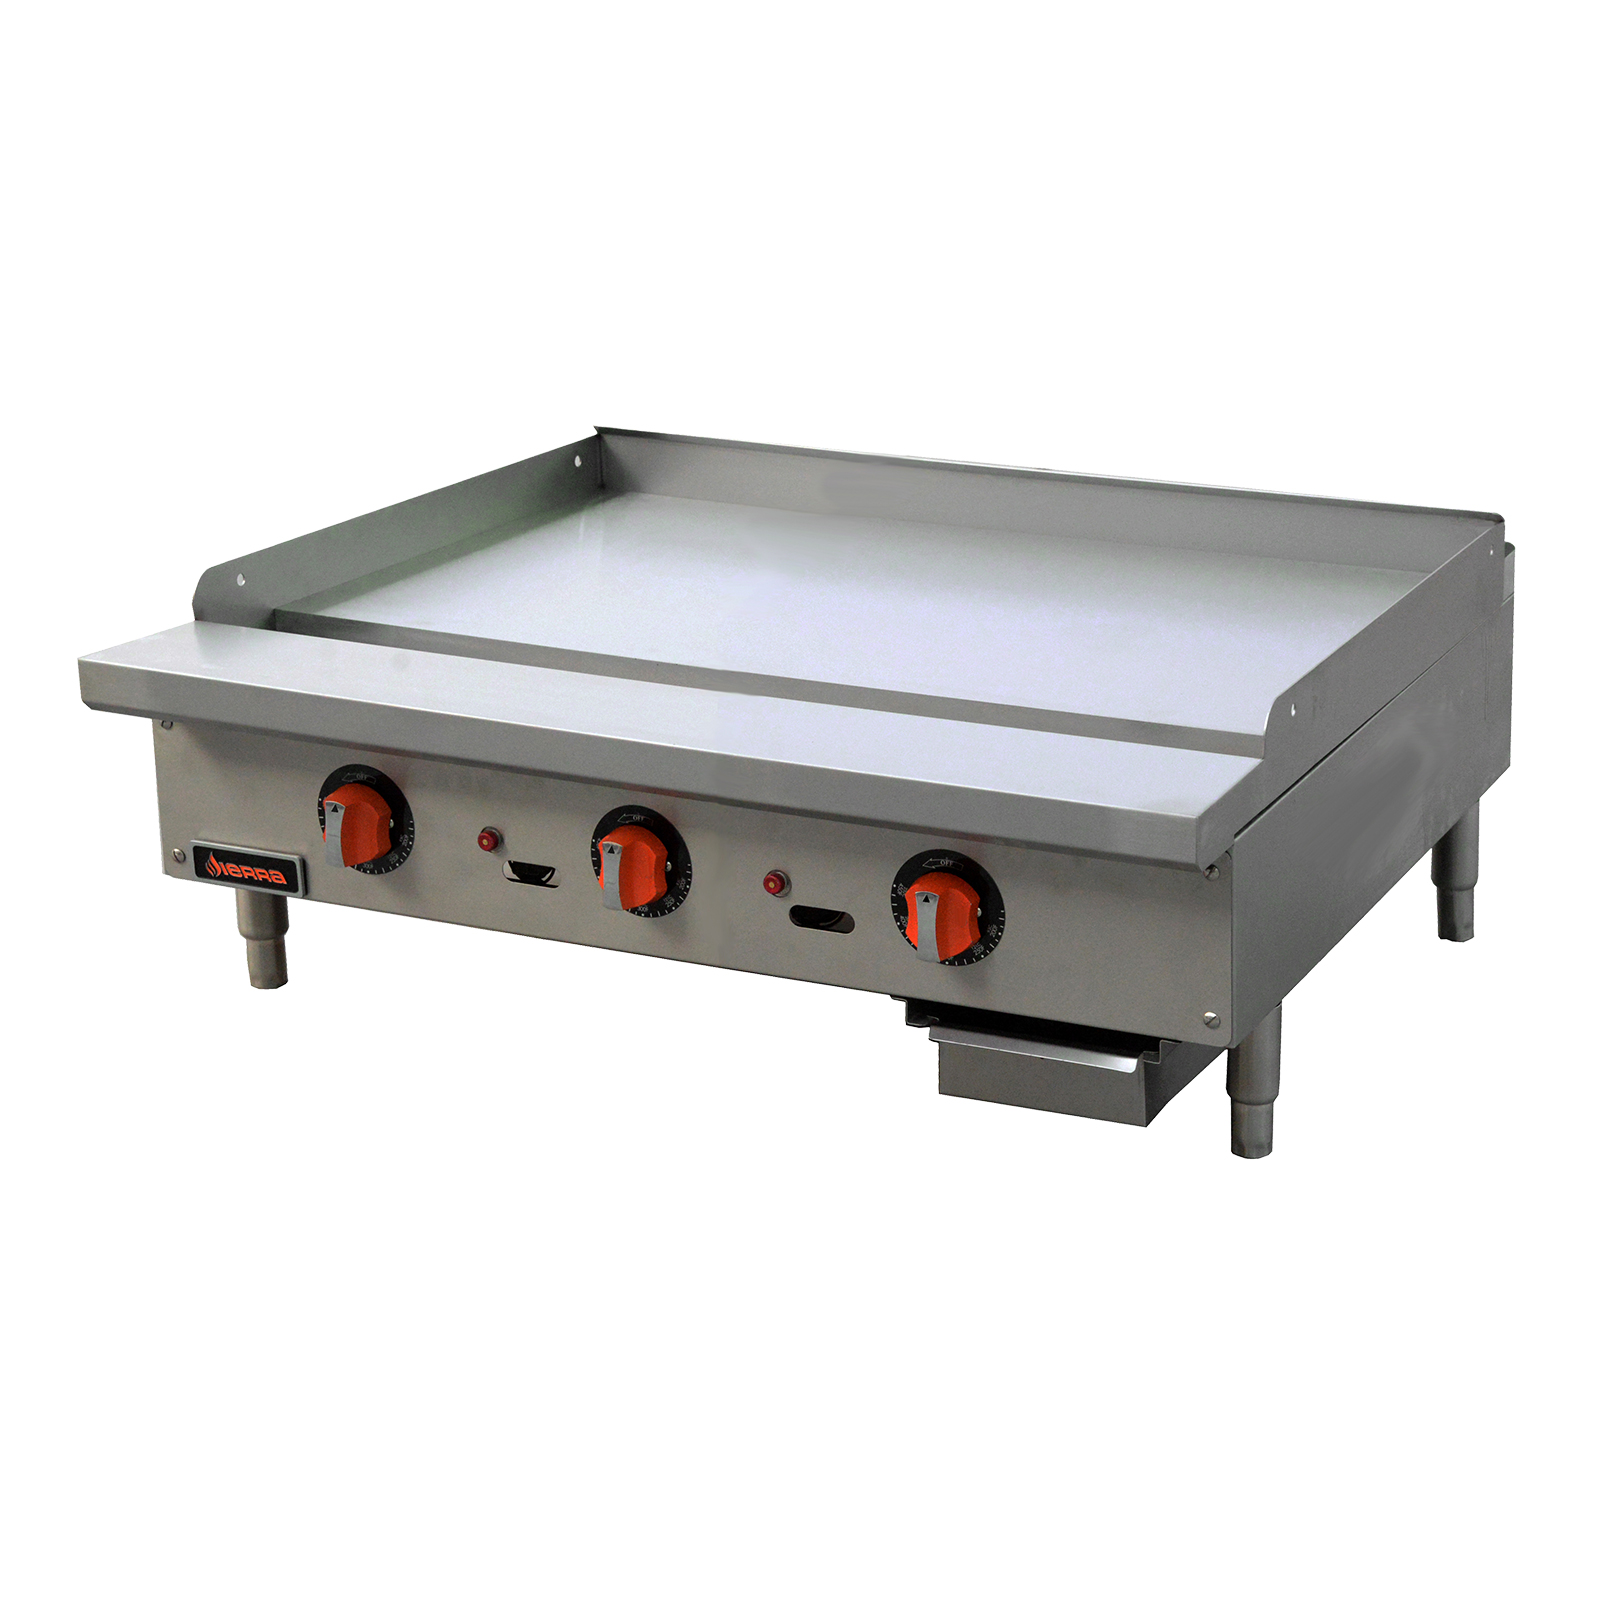 MVP SRTG-36 griddle, gas, countertop